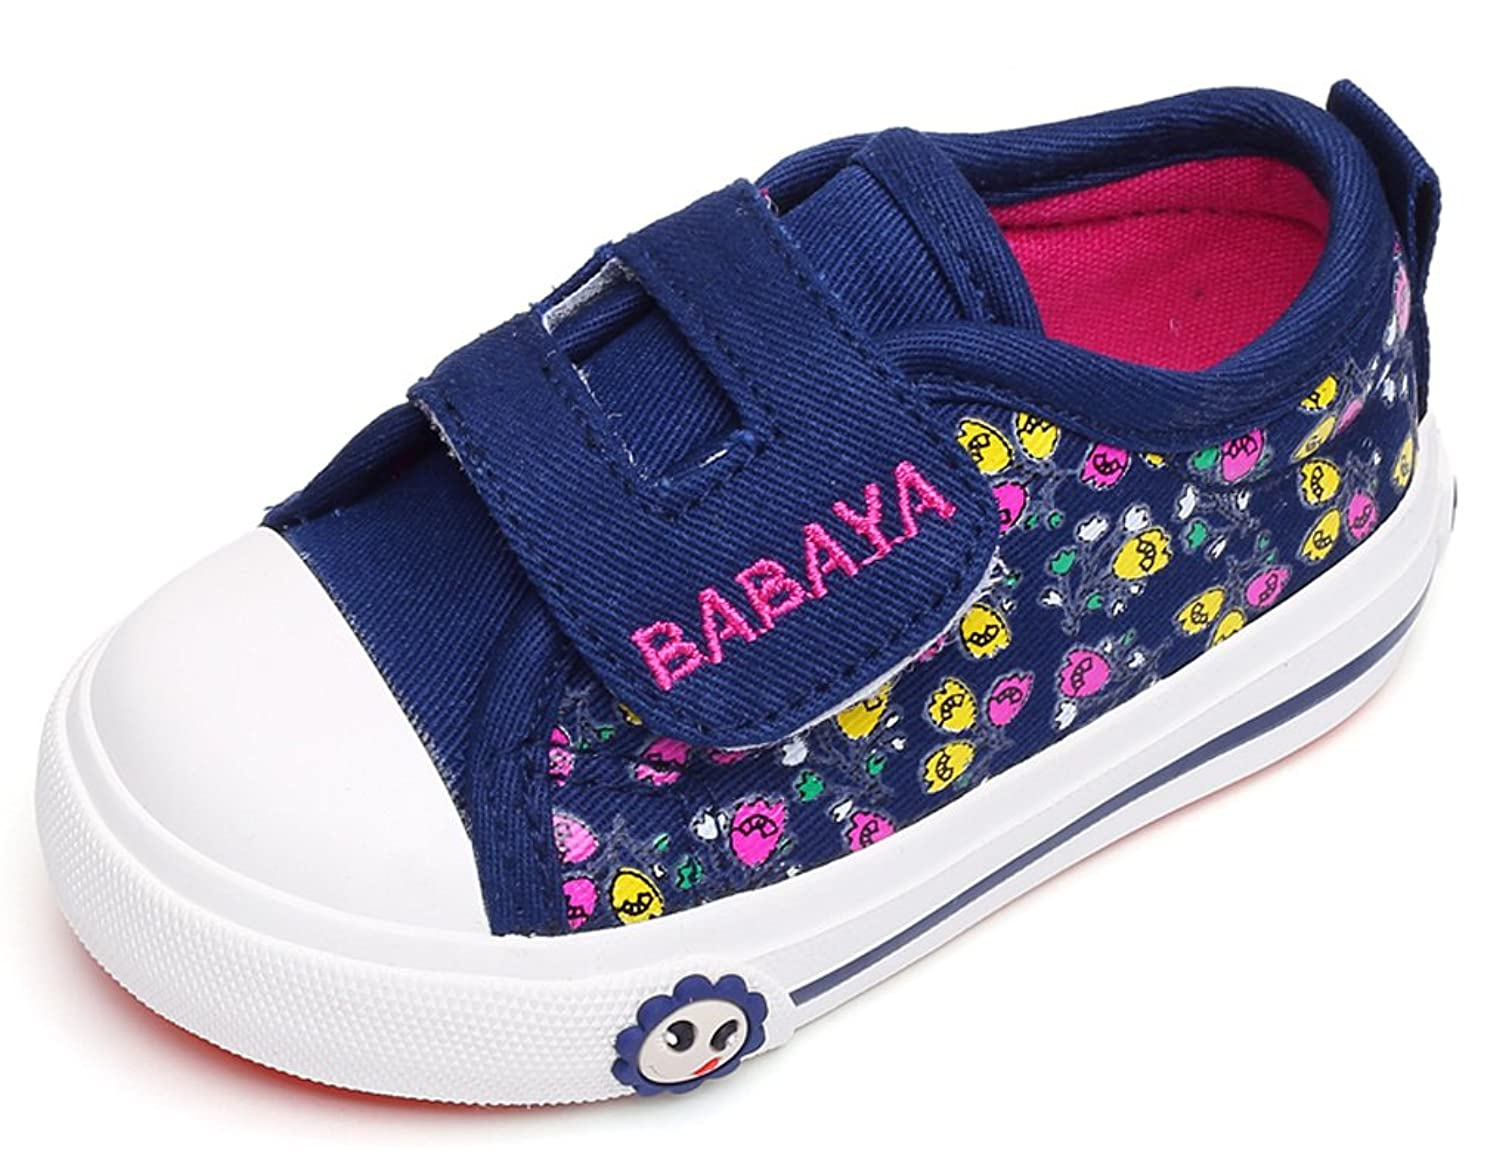 c339f59e2b1763 2015 New D.s.mor Toddler Floral Print Kids Shoes Girls Shoes (6.5 M